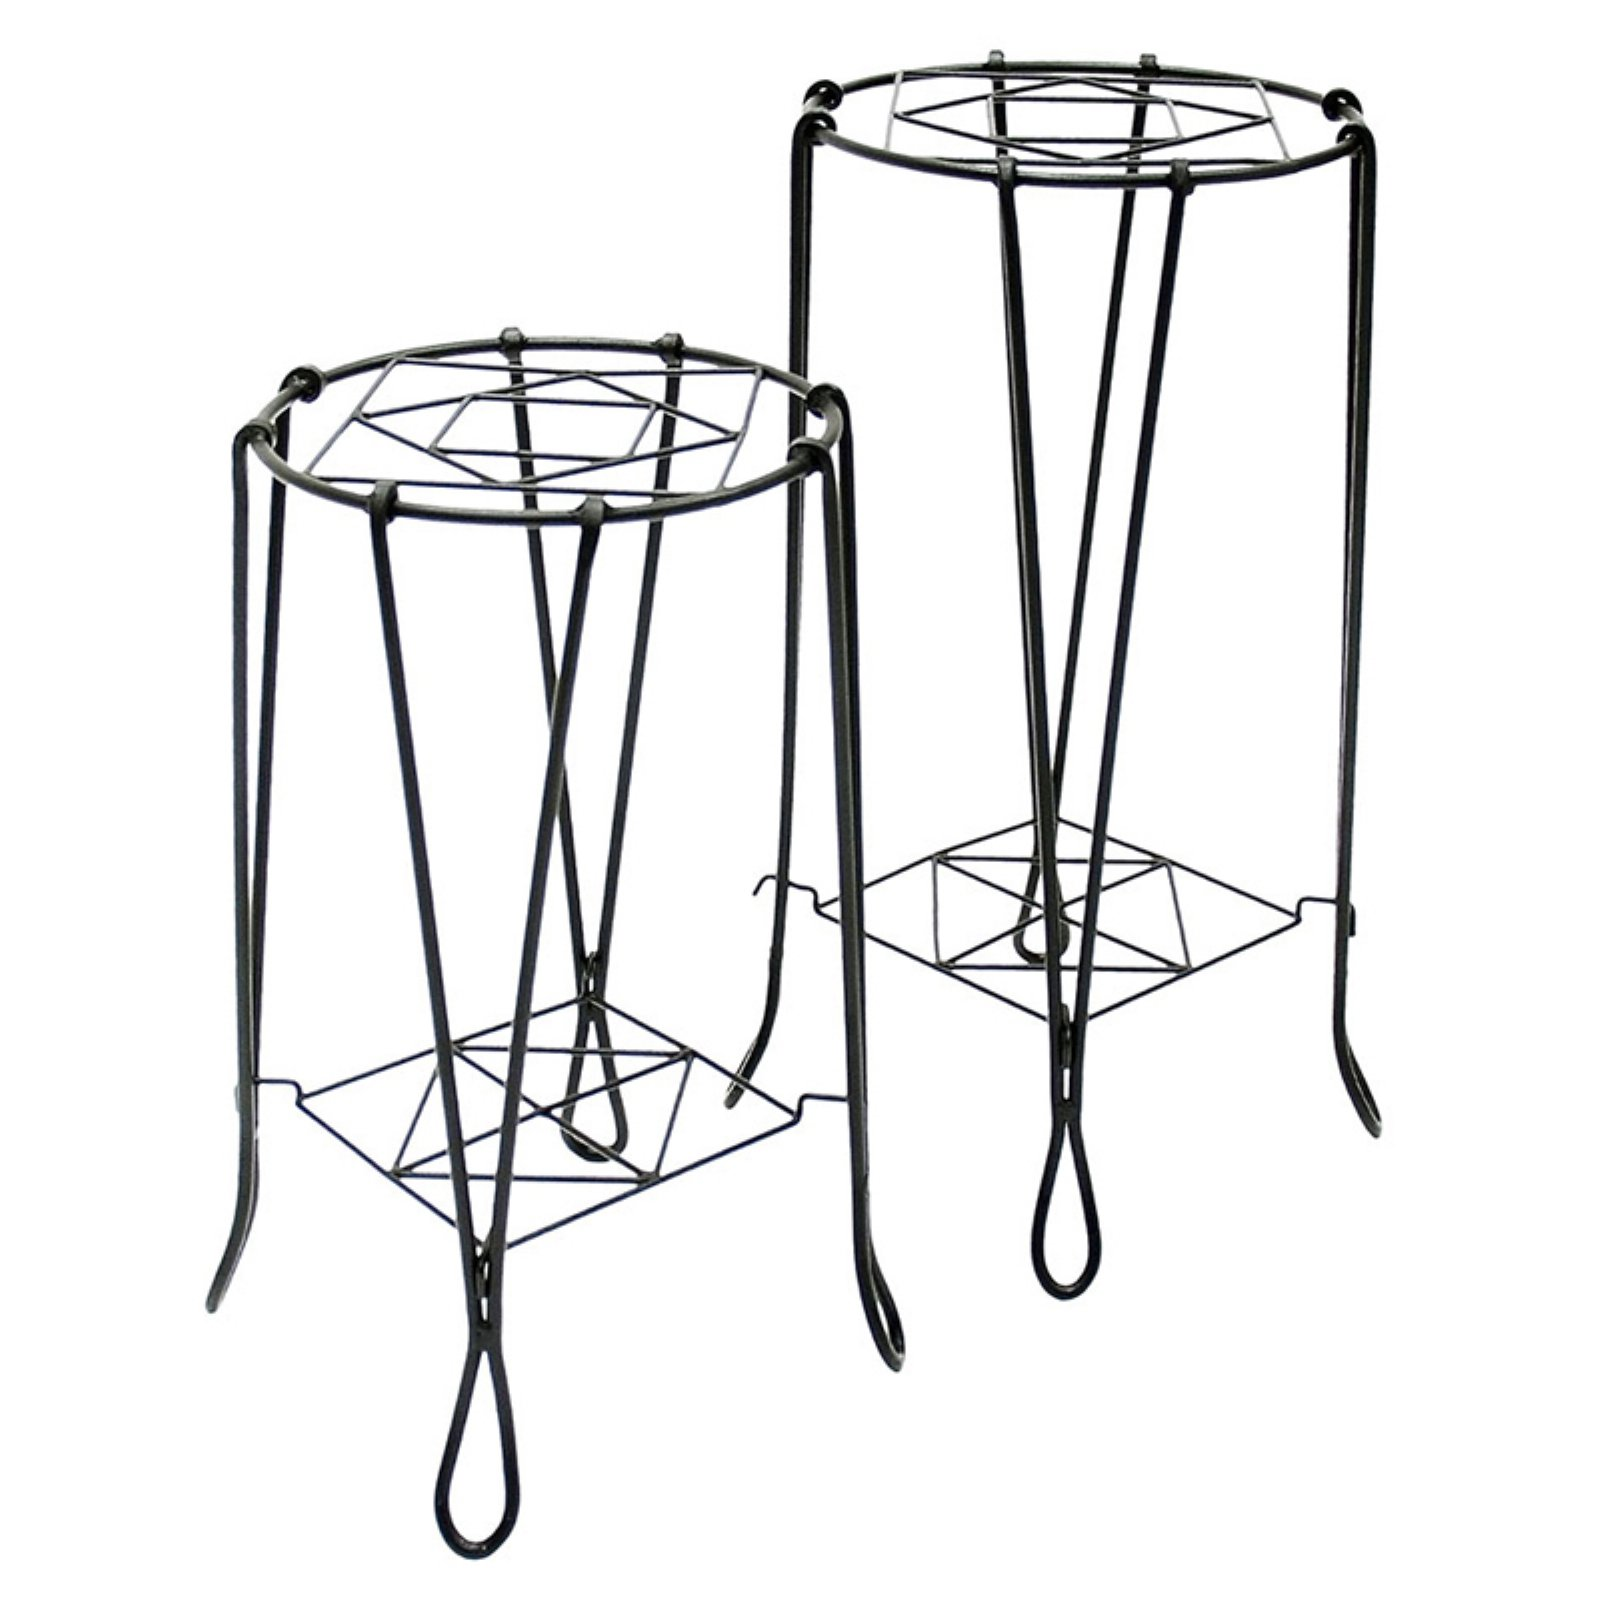 Achla Designs Insignia Plant Stands - Set of 2